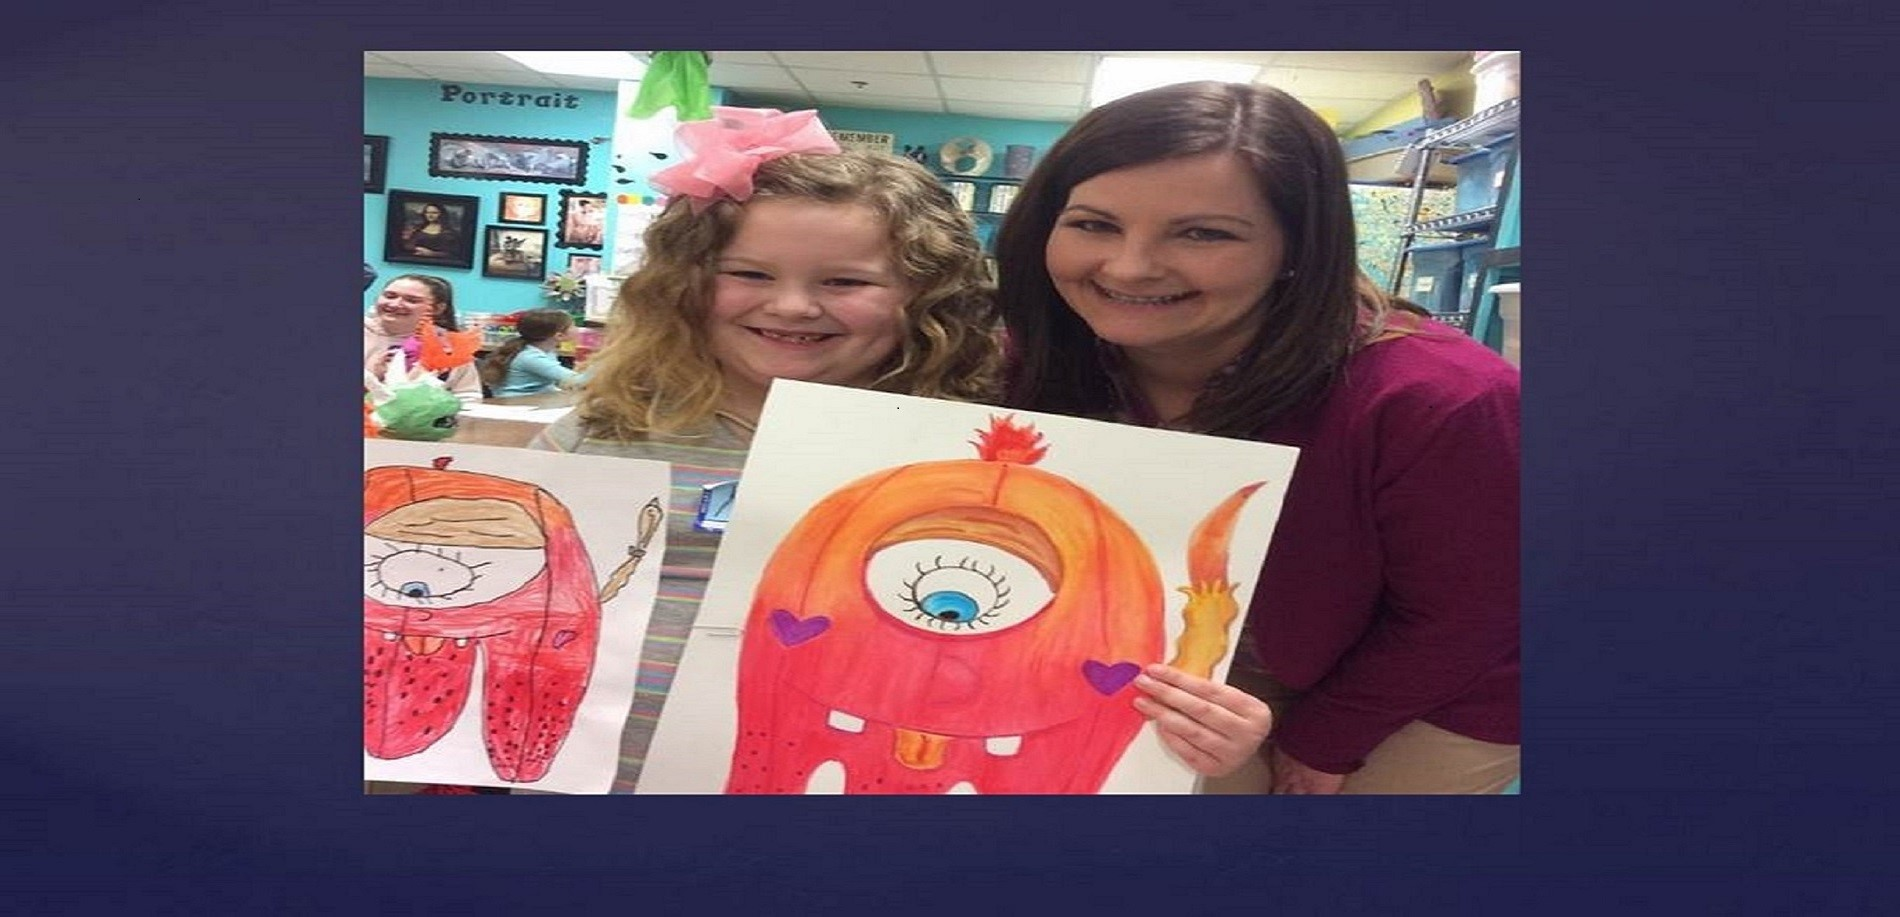 CHHS art students collaborated with LTES to complete their